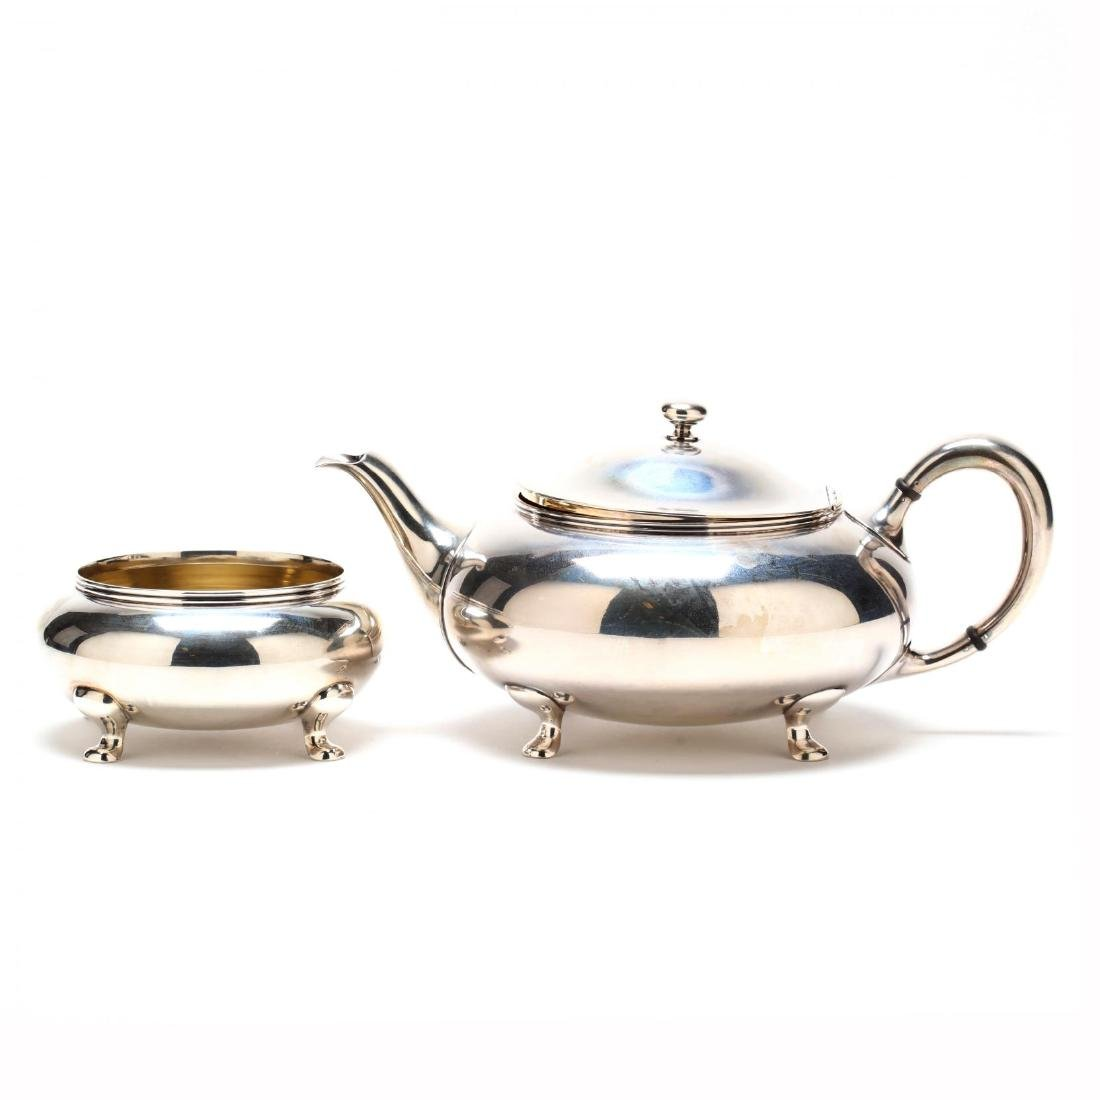 Towle Sterling Silver Tea & Coffee Service - 6